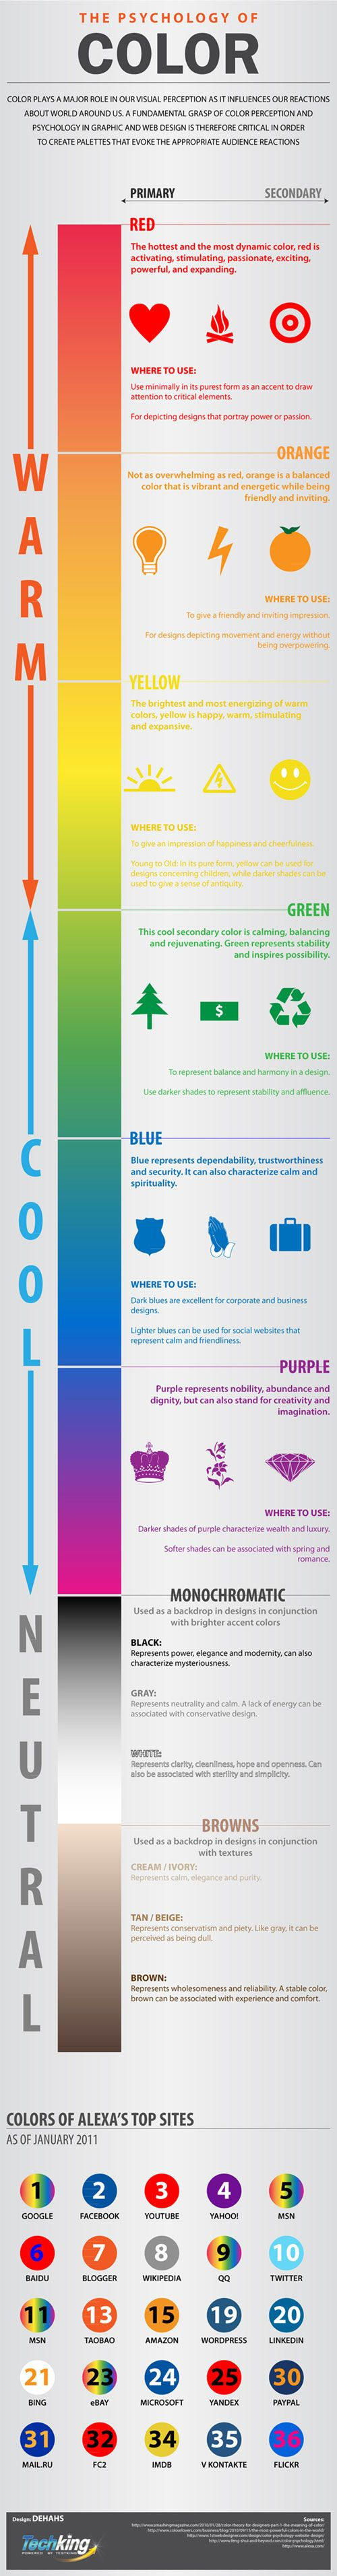 The Psychology of Color for Web Designers